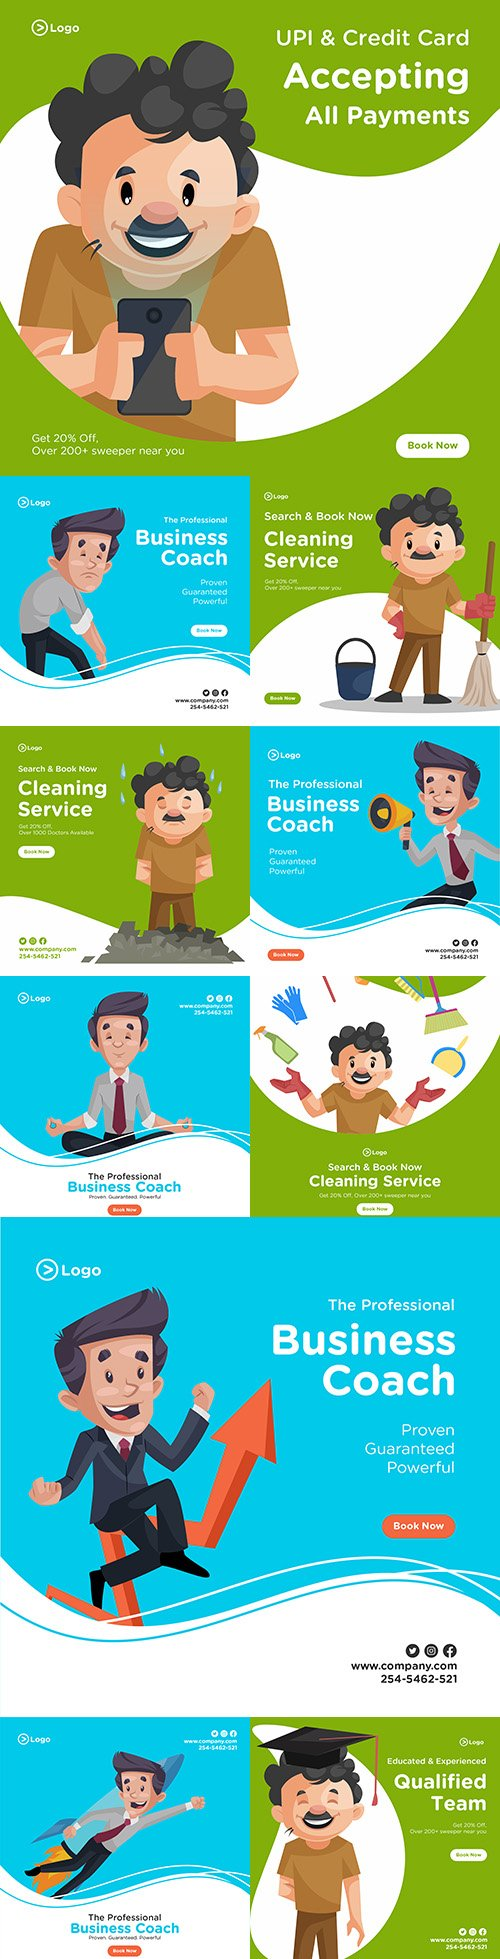 Cleaning banner design with cleaning equipment and businessman